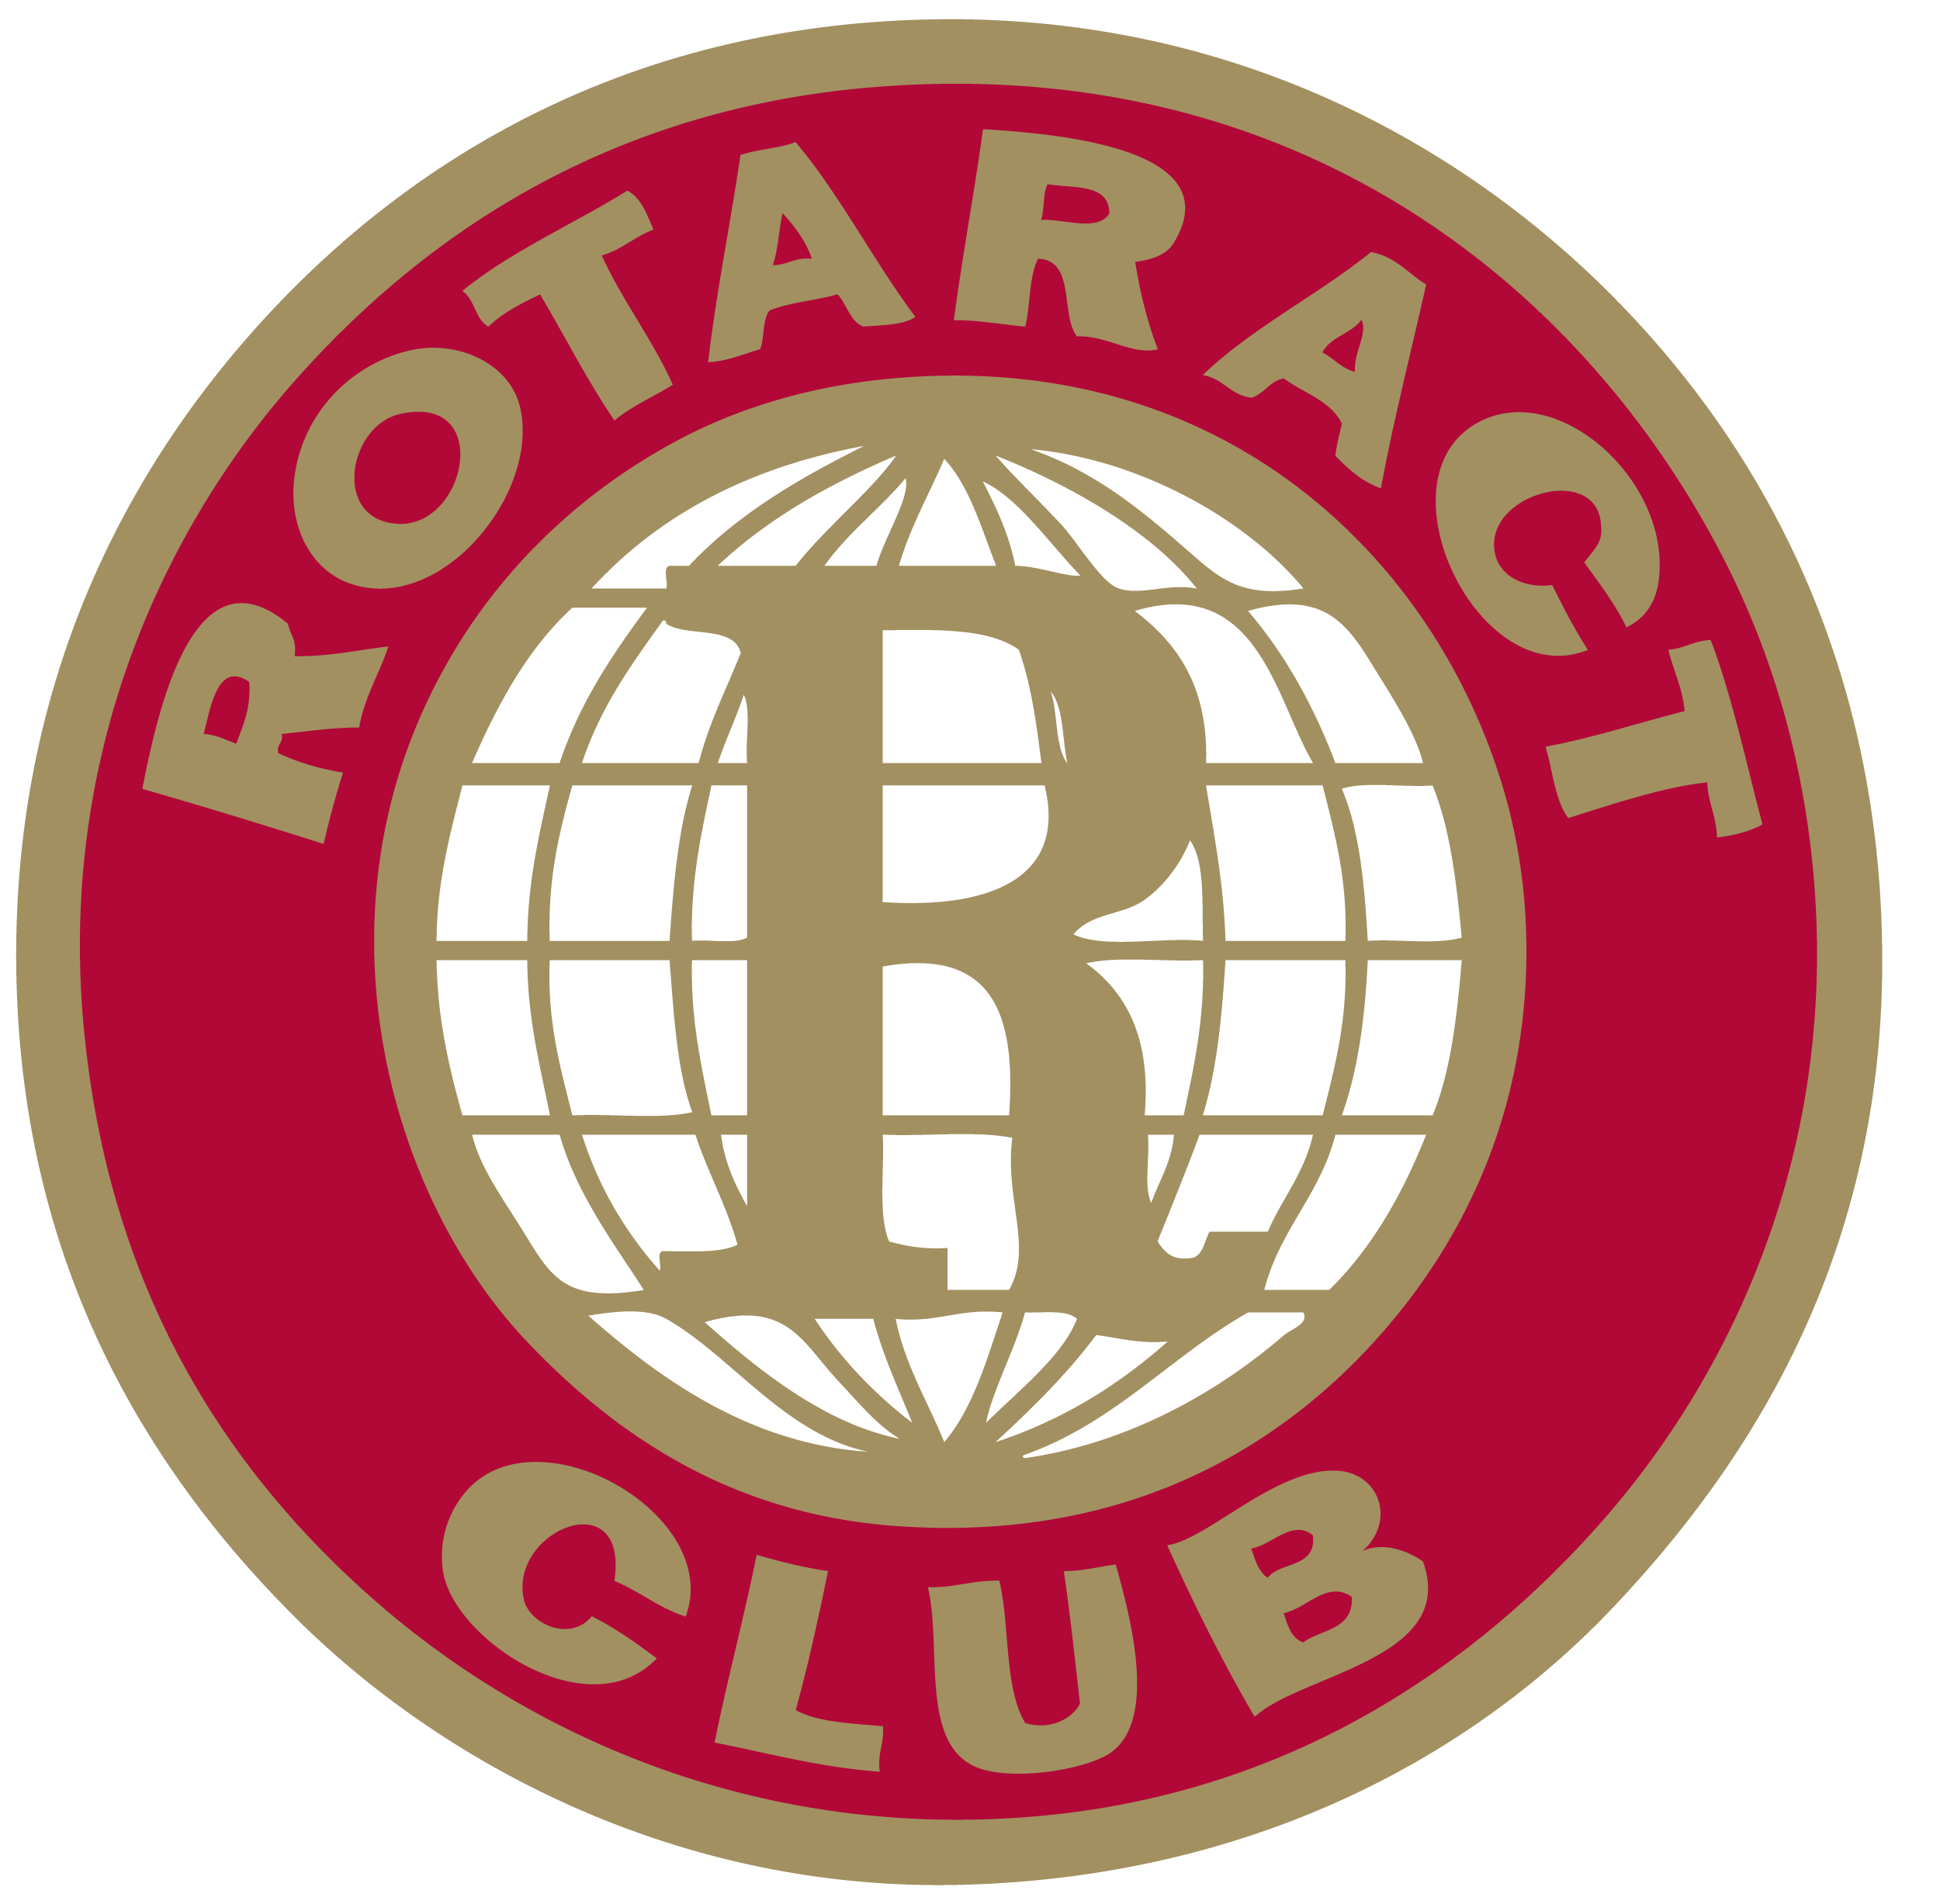 Rotaract Club of Naples